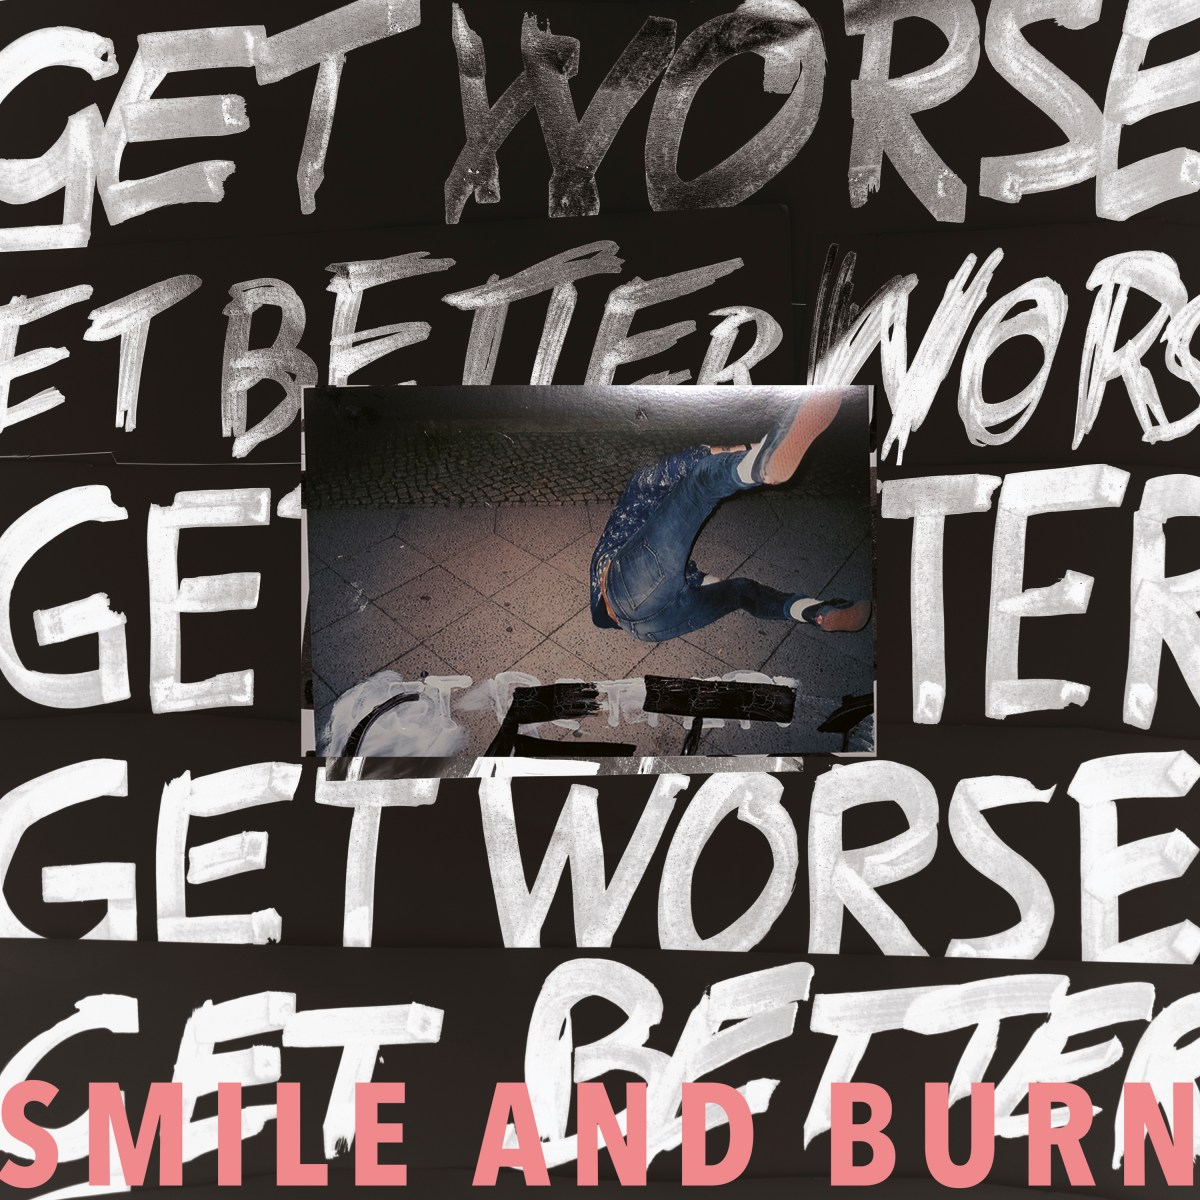 Smile And Burn - Get Better Get Worse